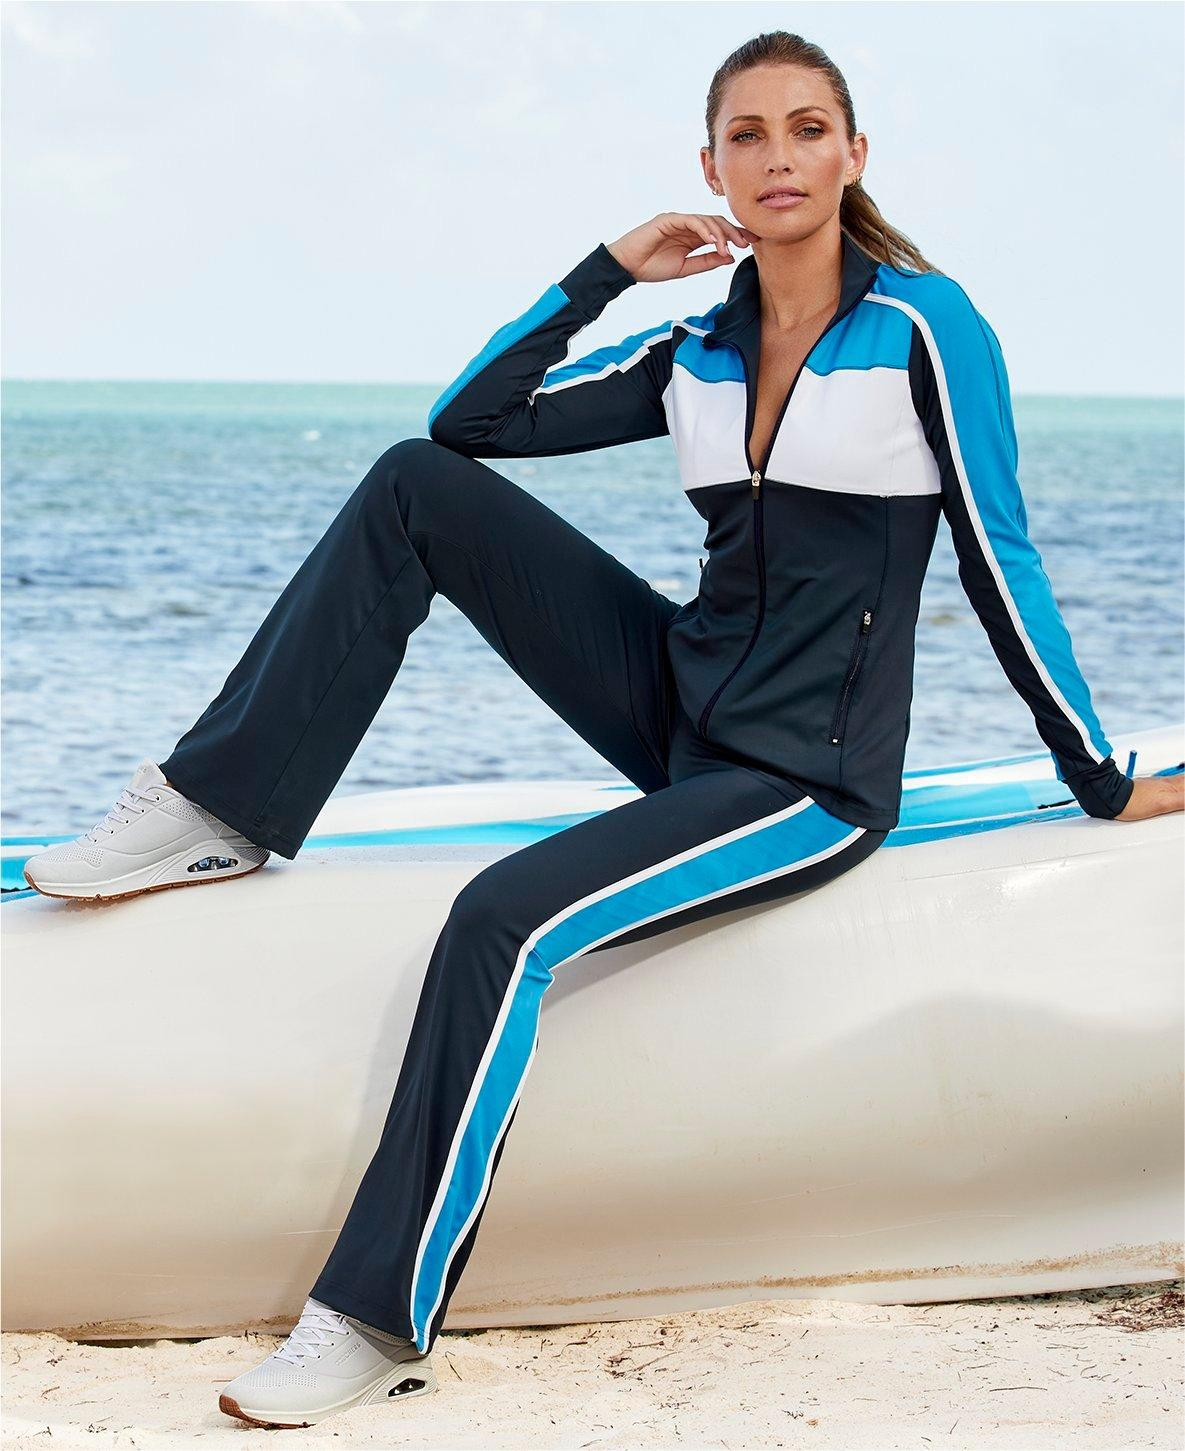 model wearing a blue and white color block two-piece sport set and white sneakers.